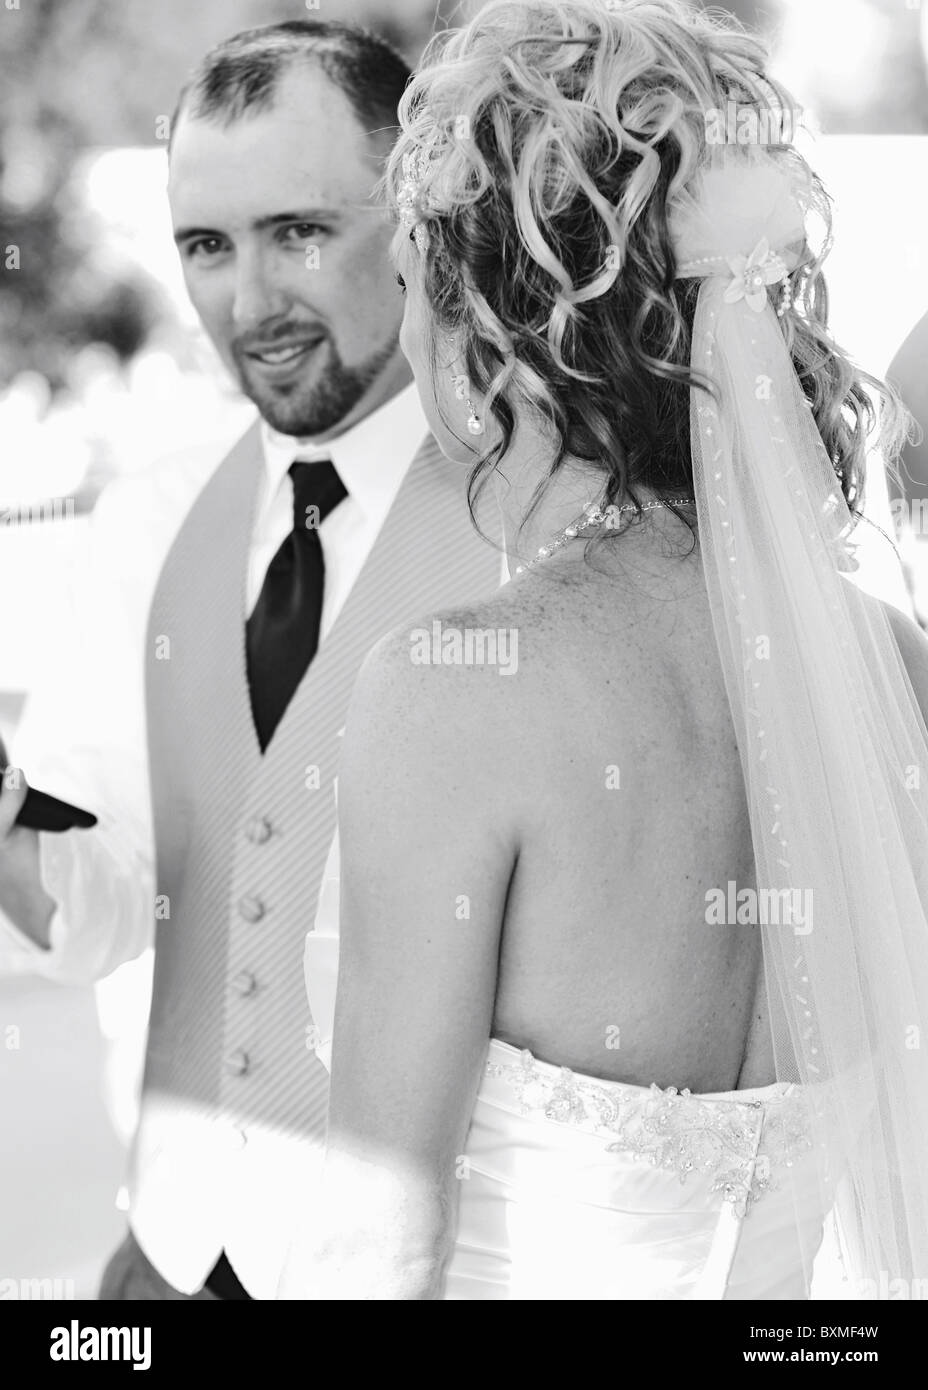 candid photo of groom standing behind bride during toast at